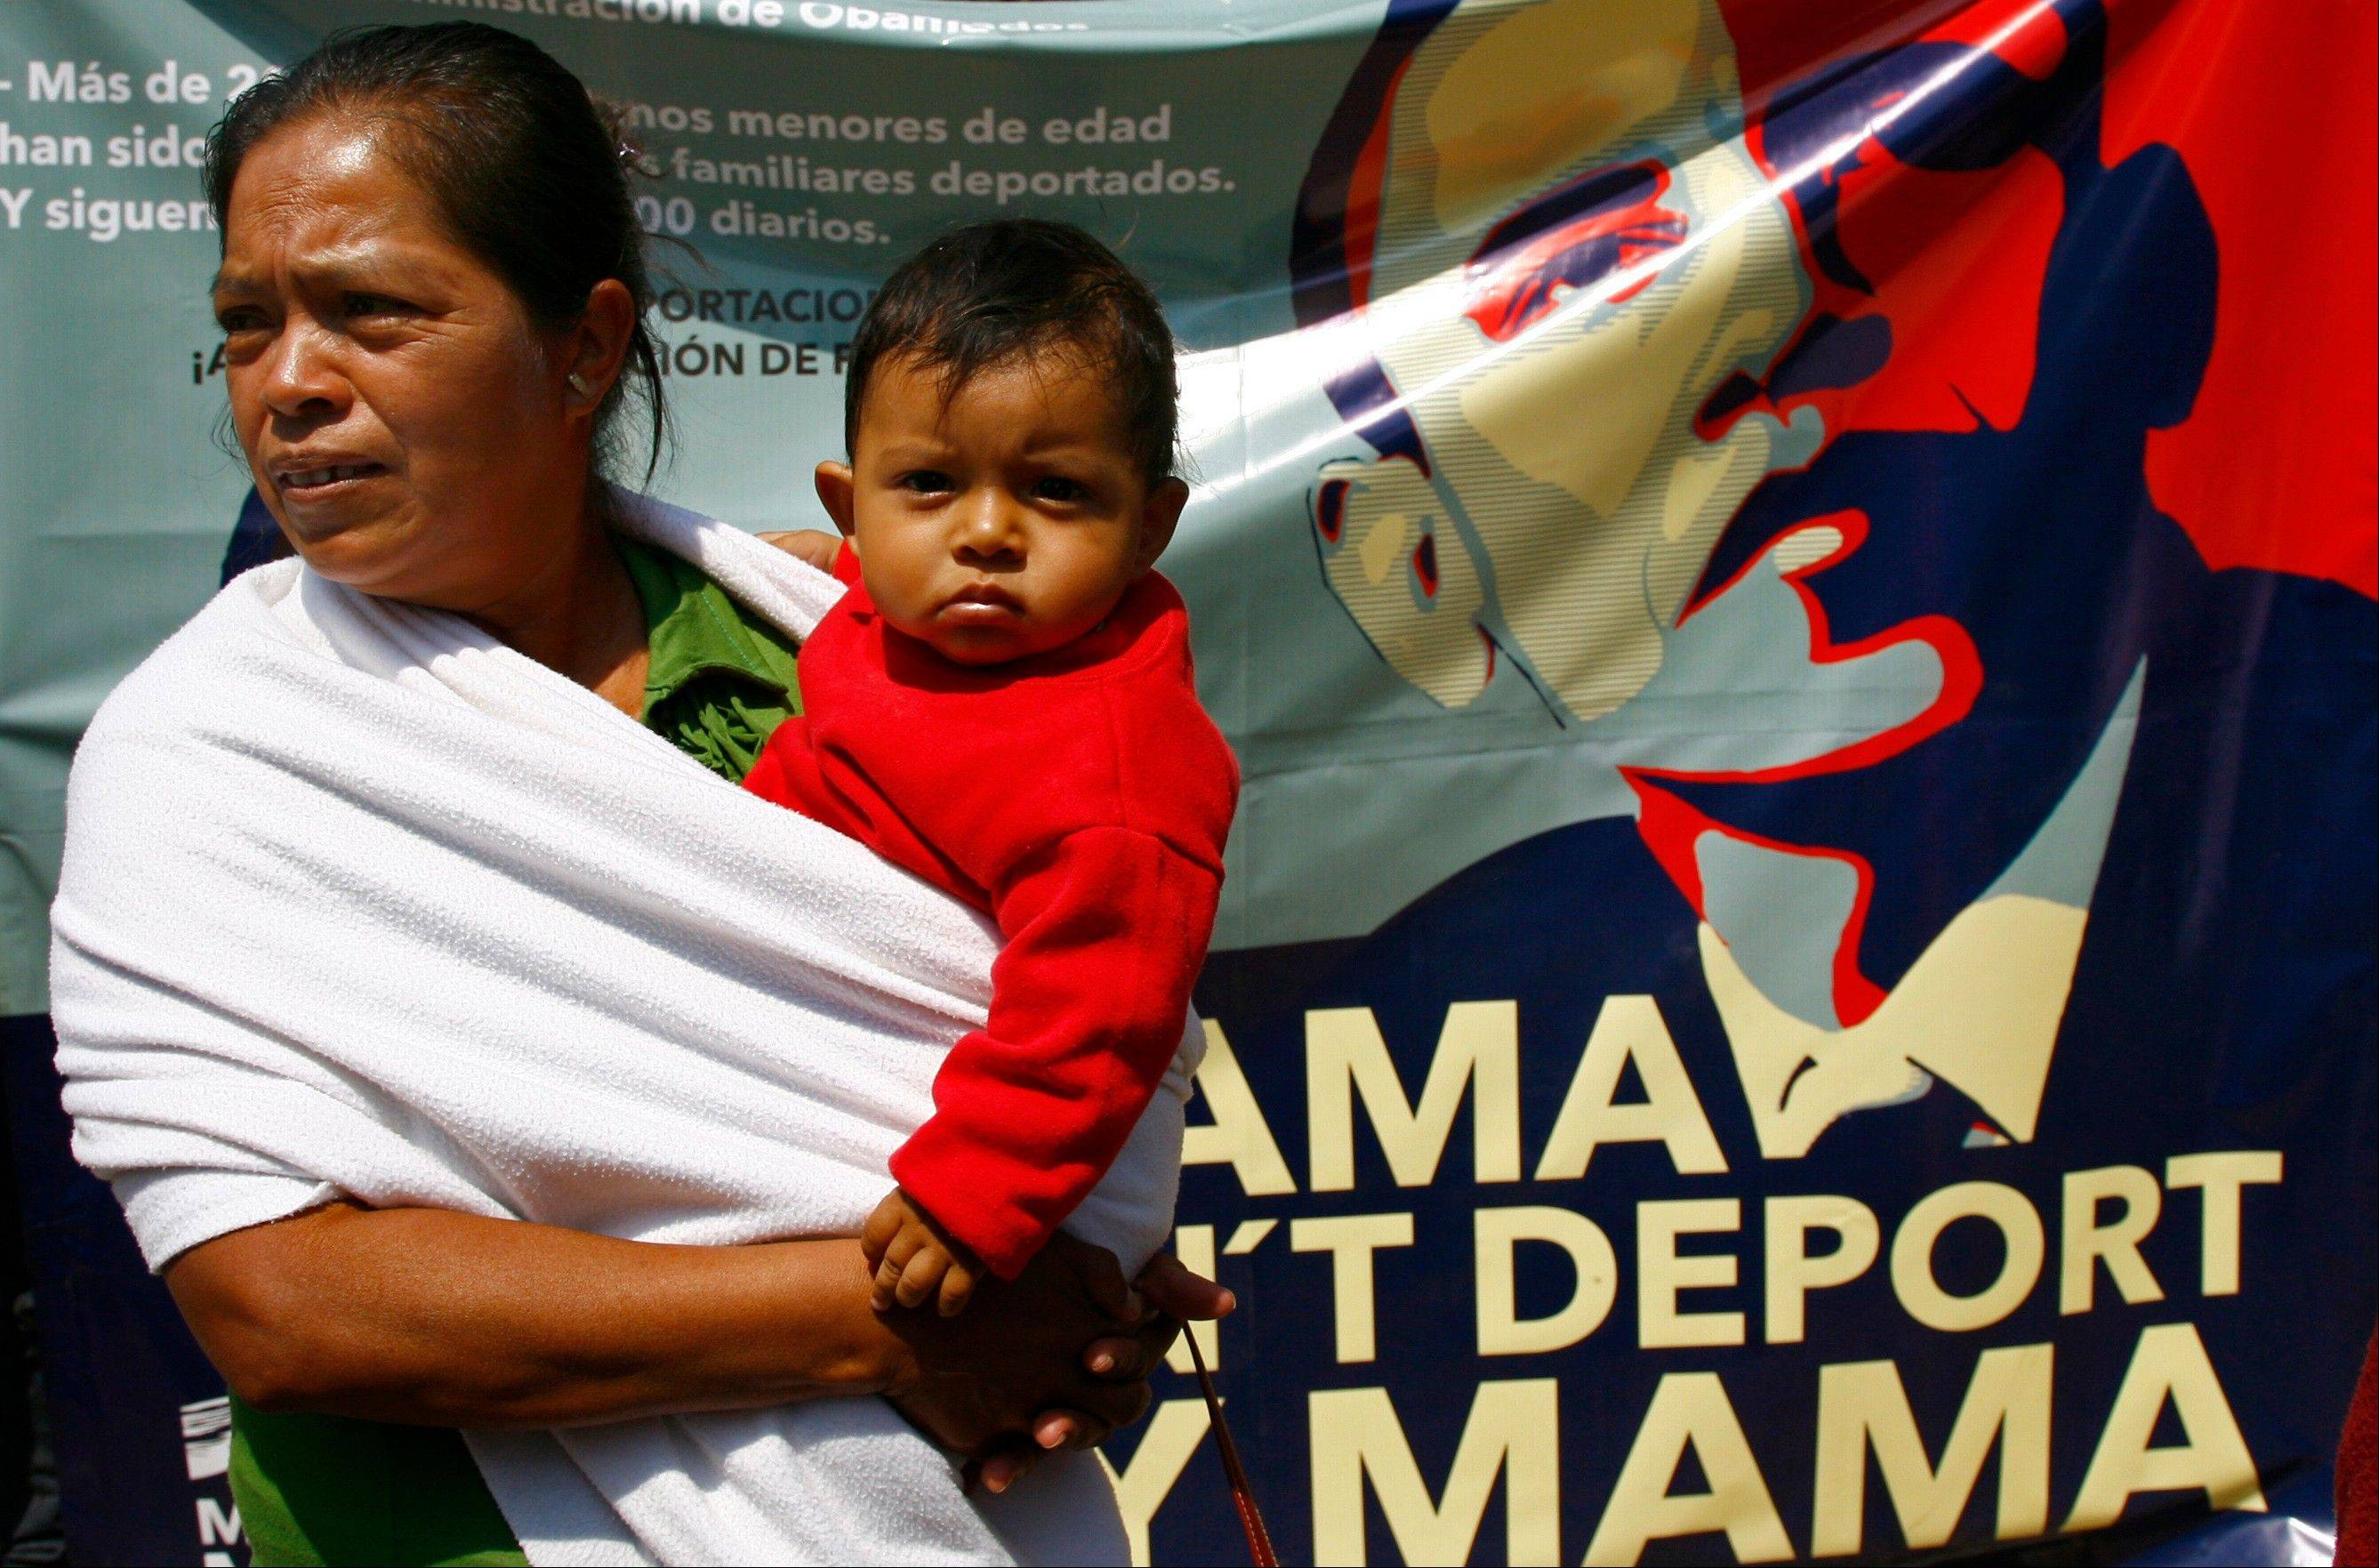 A woman holds her child as she attends a protest outside the U.S. embassy before the arrival of President Barack Obama in Mexico City, Thursday, May 2, 2013.